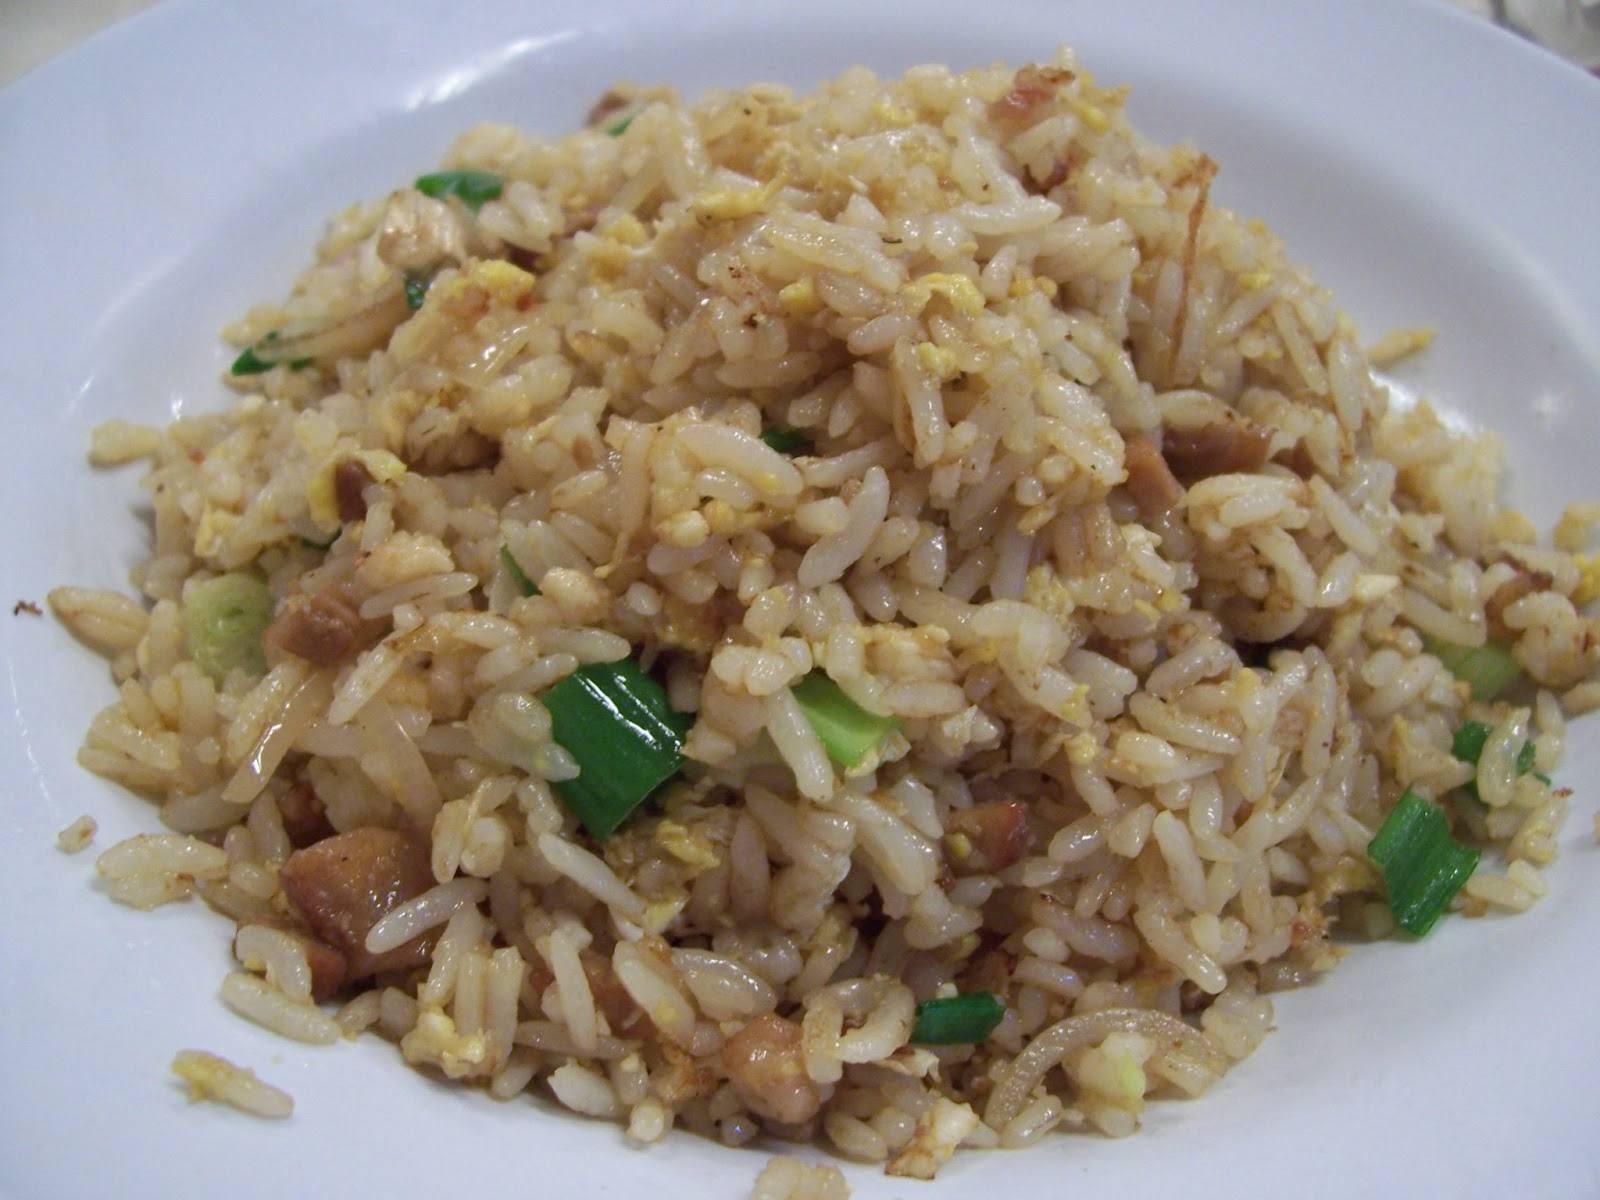 Fooood yum february 2013 for Fish fried rice